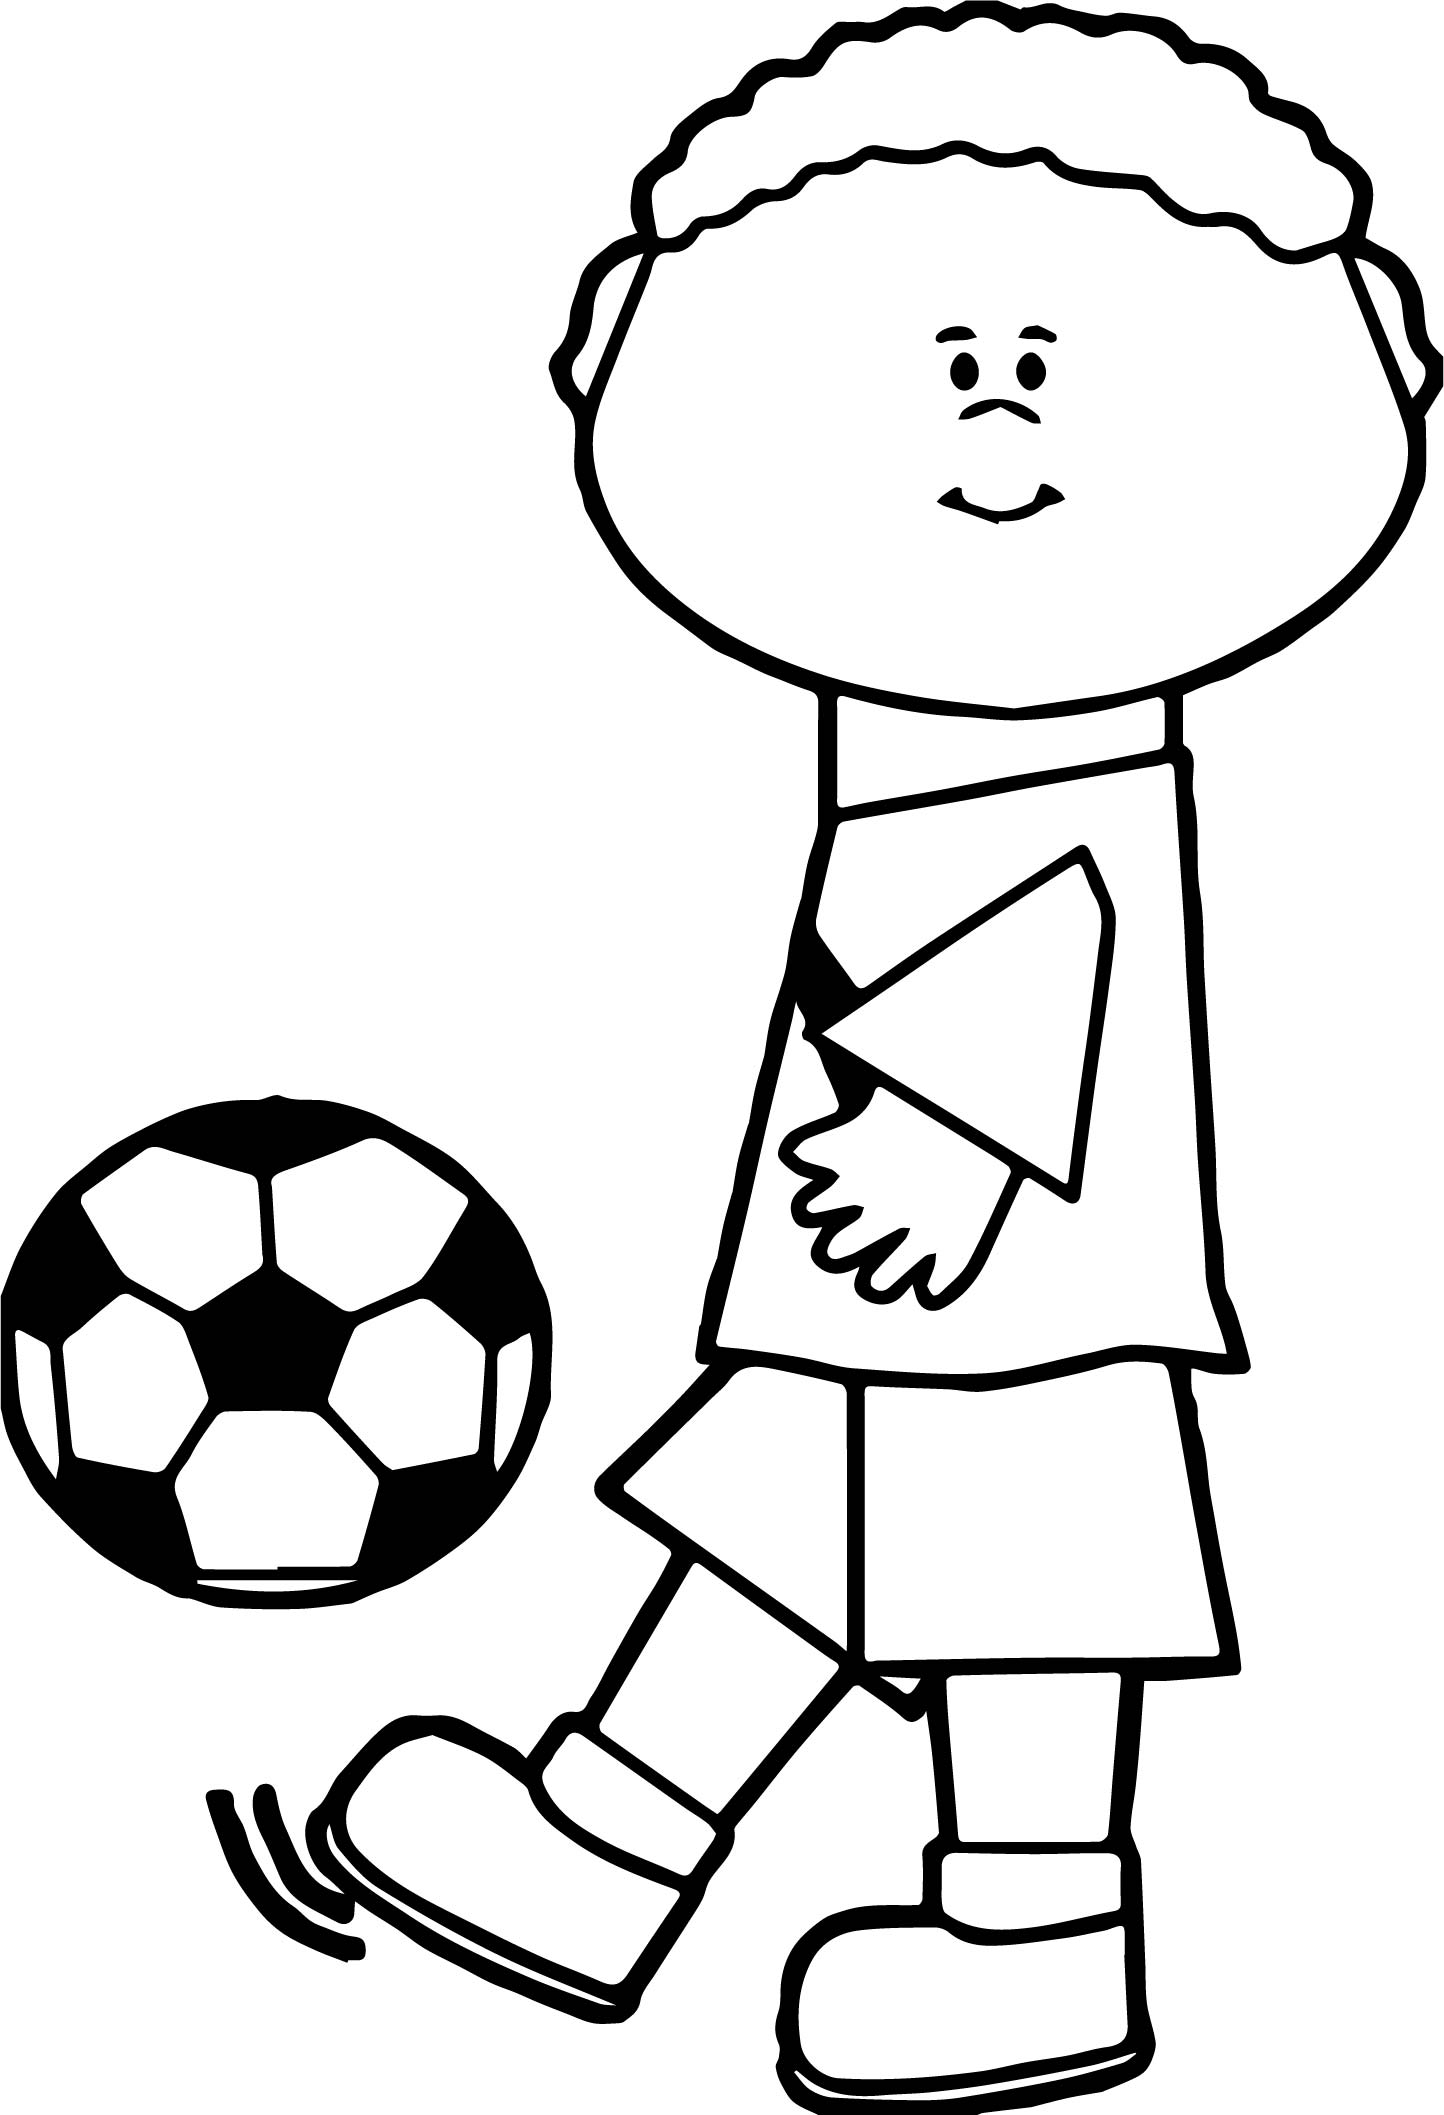 Kids Kick Soccer Ball Playing Football Coloring Page Wecoloringpage